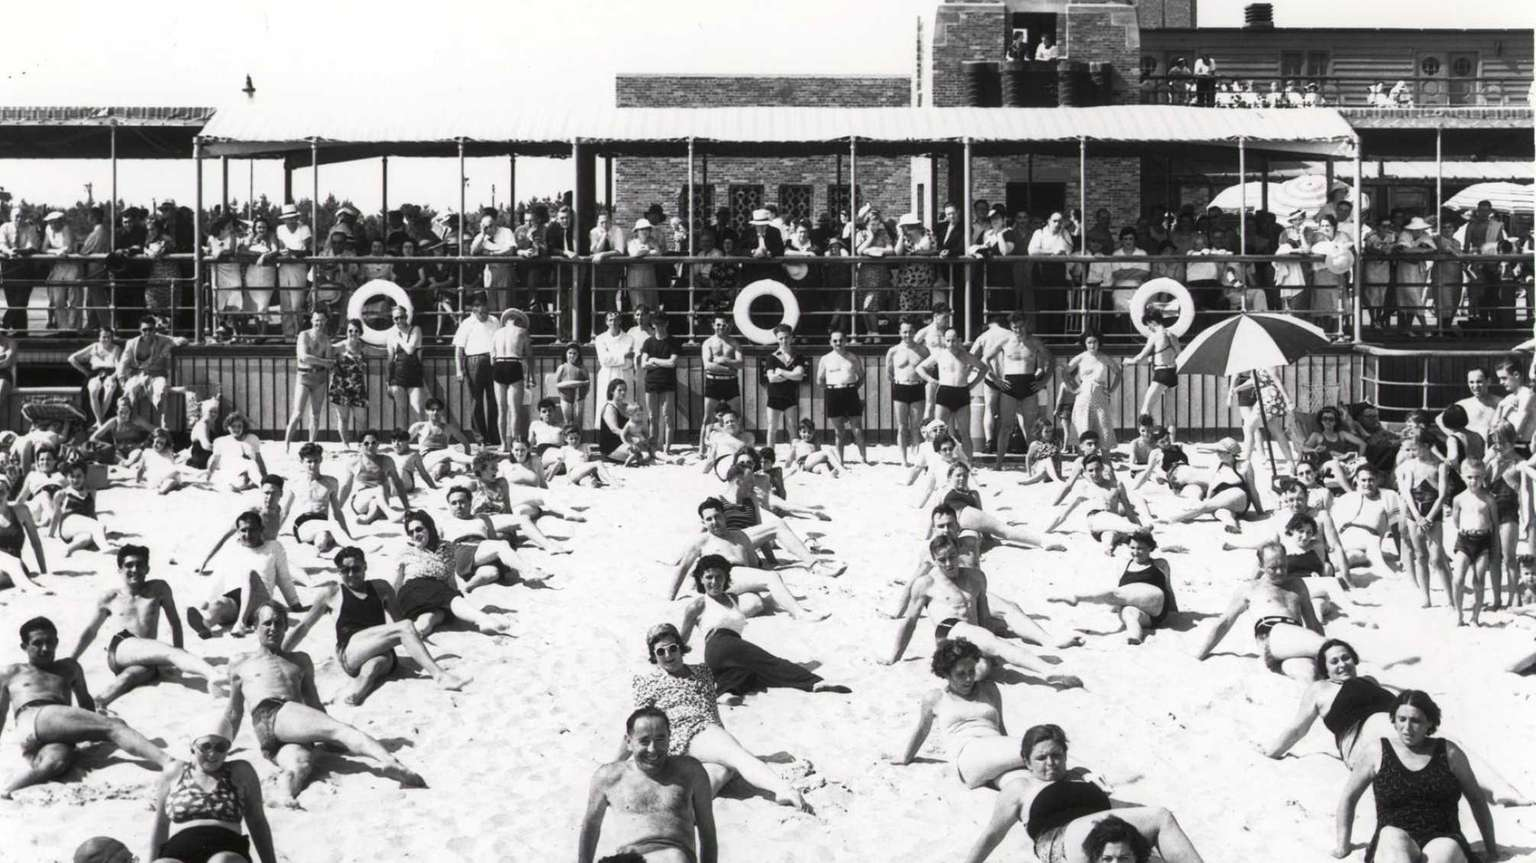 Beach-goers do coordinated exercises in the sand at